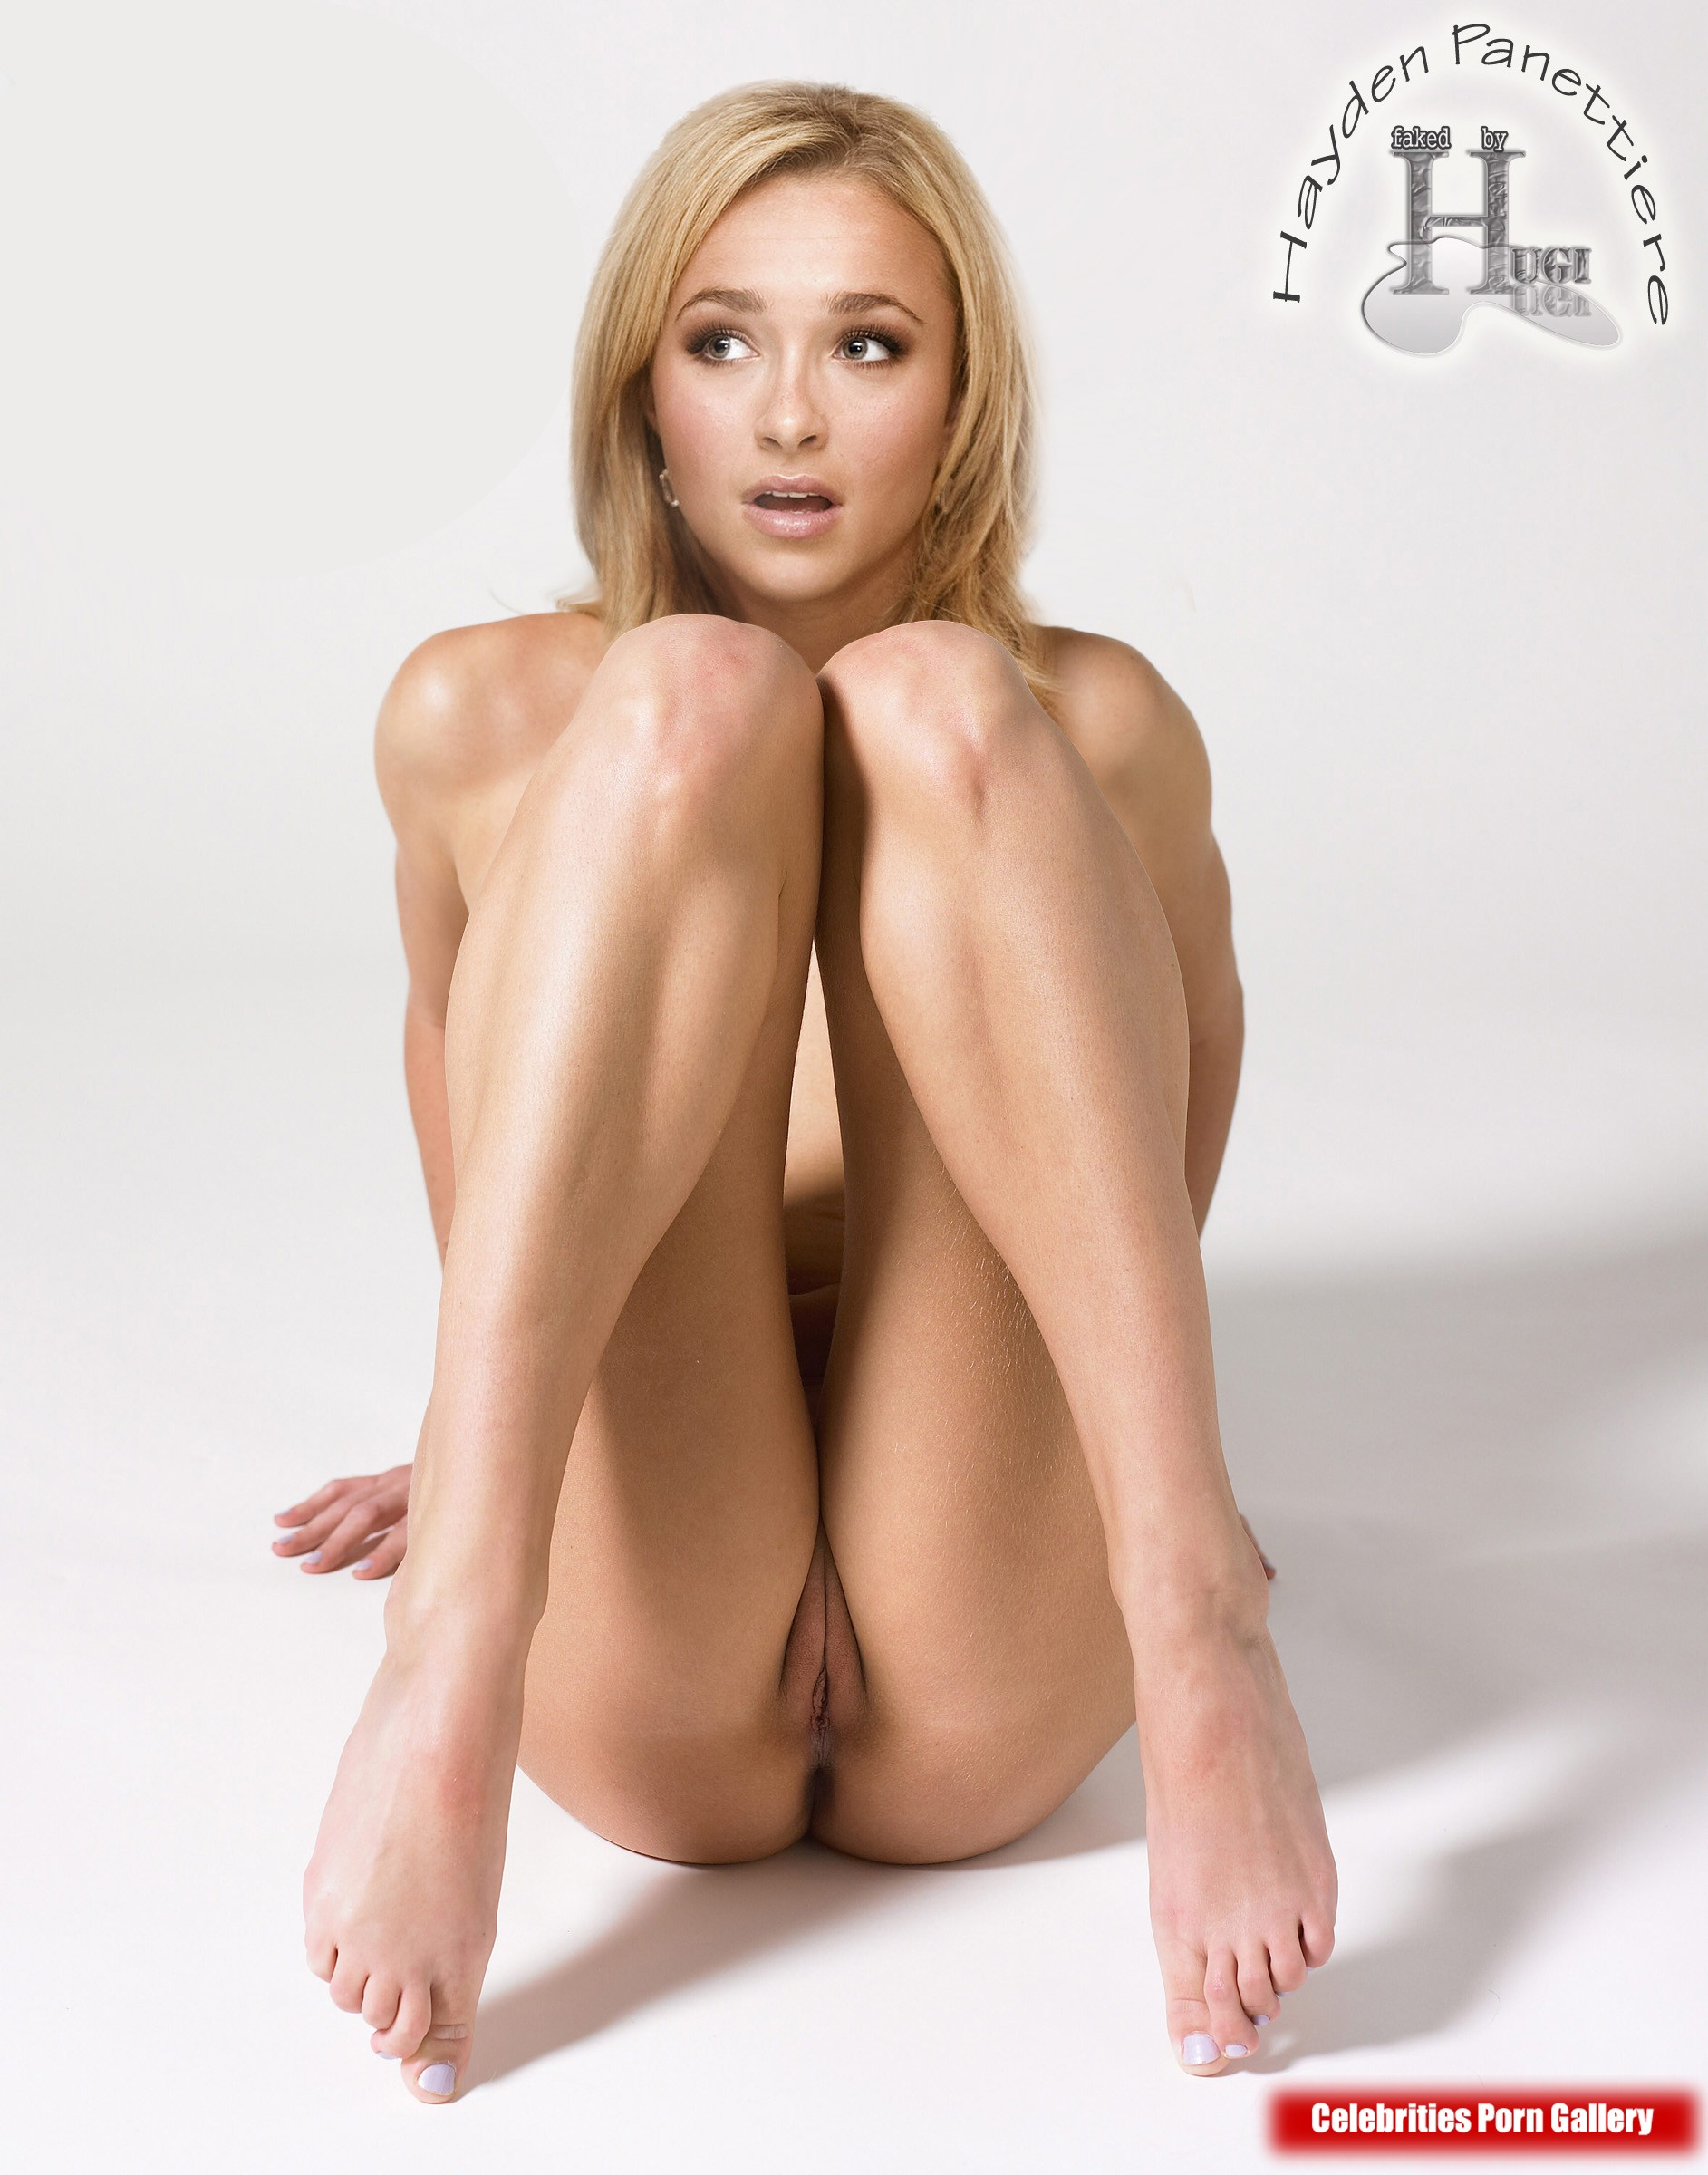 Pin by cee jane on hayden panettiere